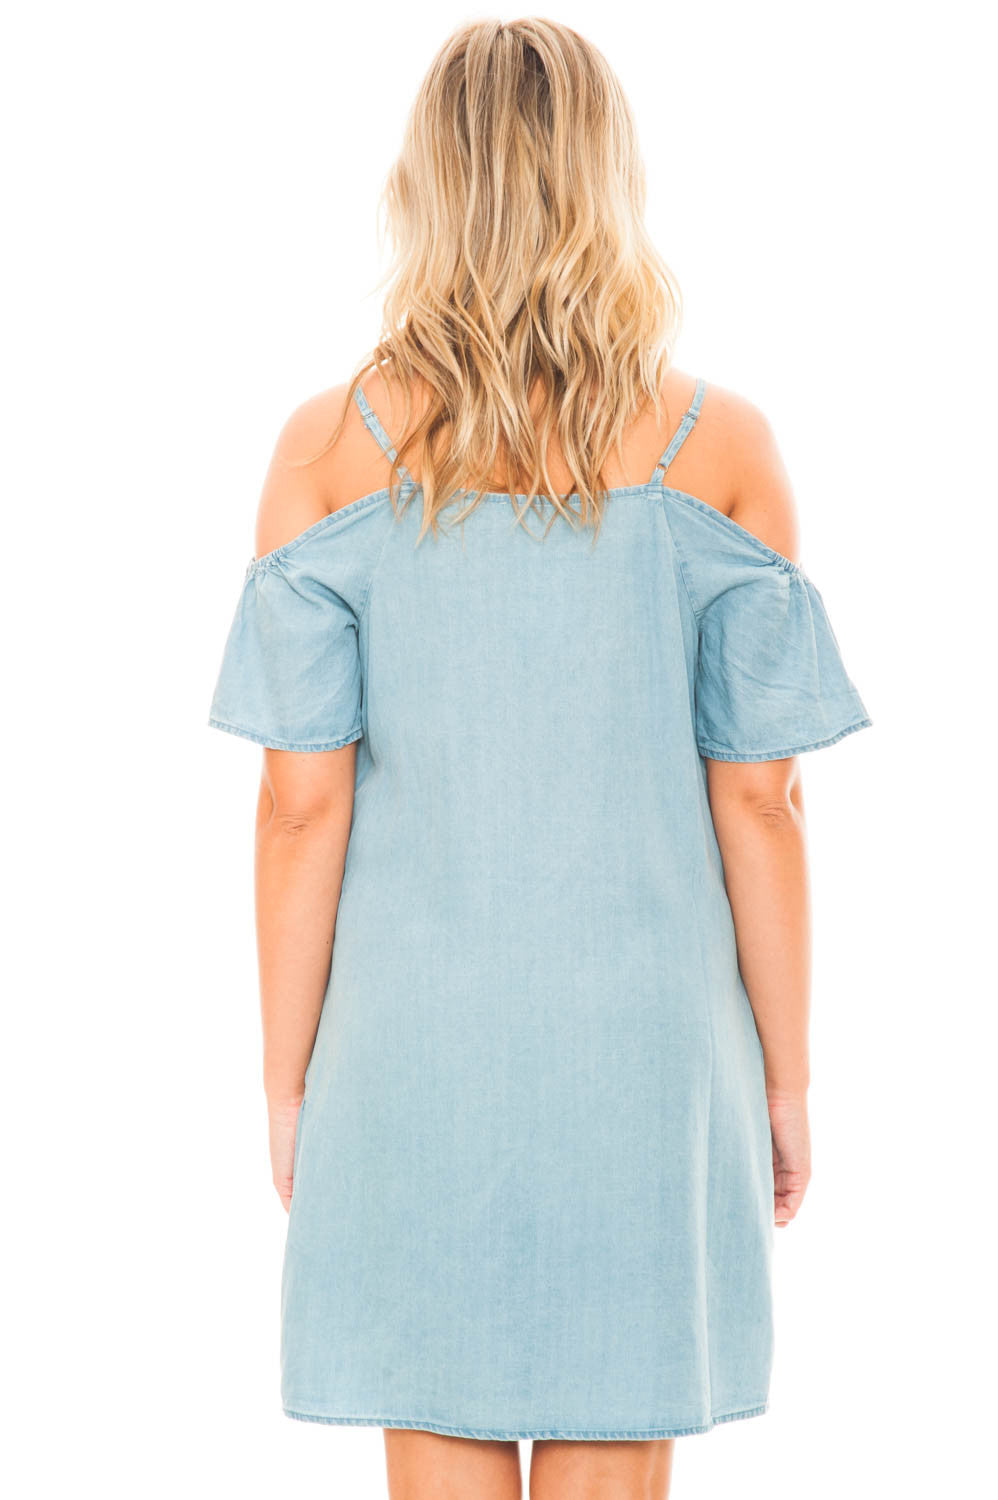 Dress - Embroidered Tensile Cold Shoulder Dress